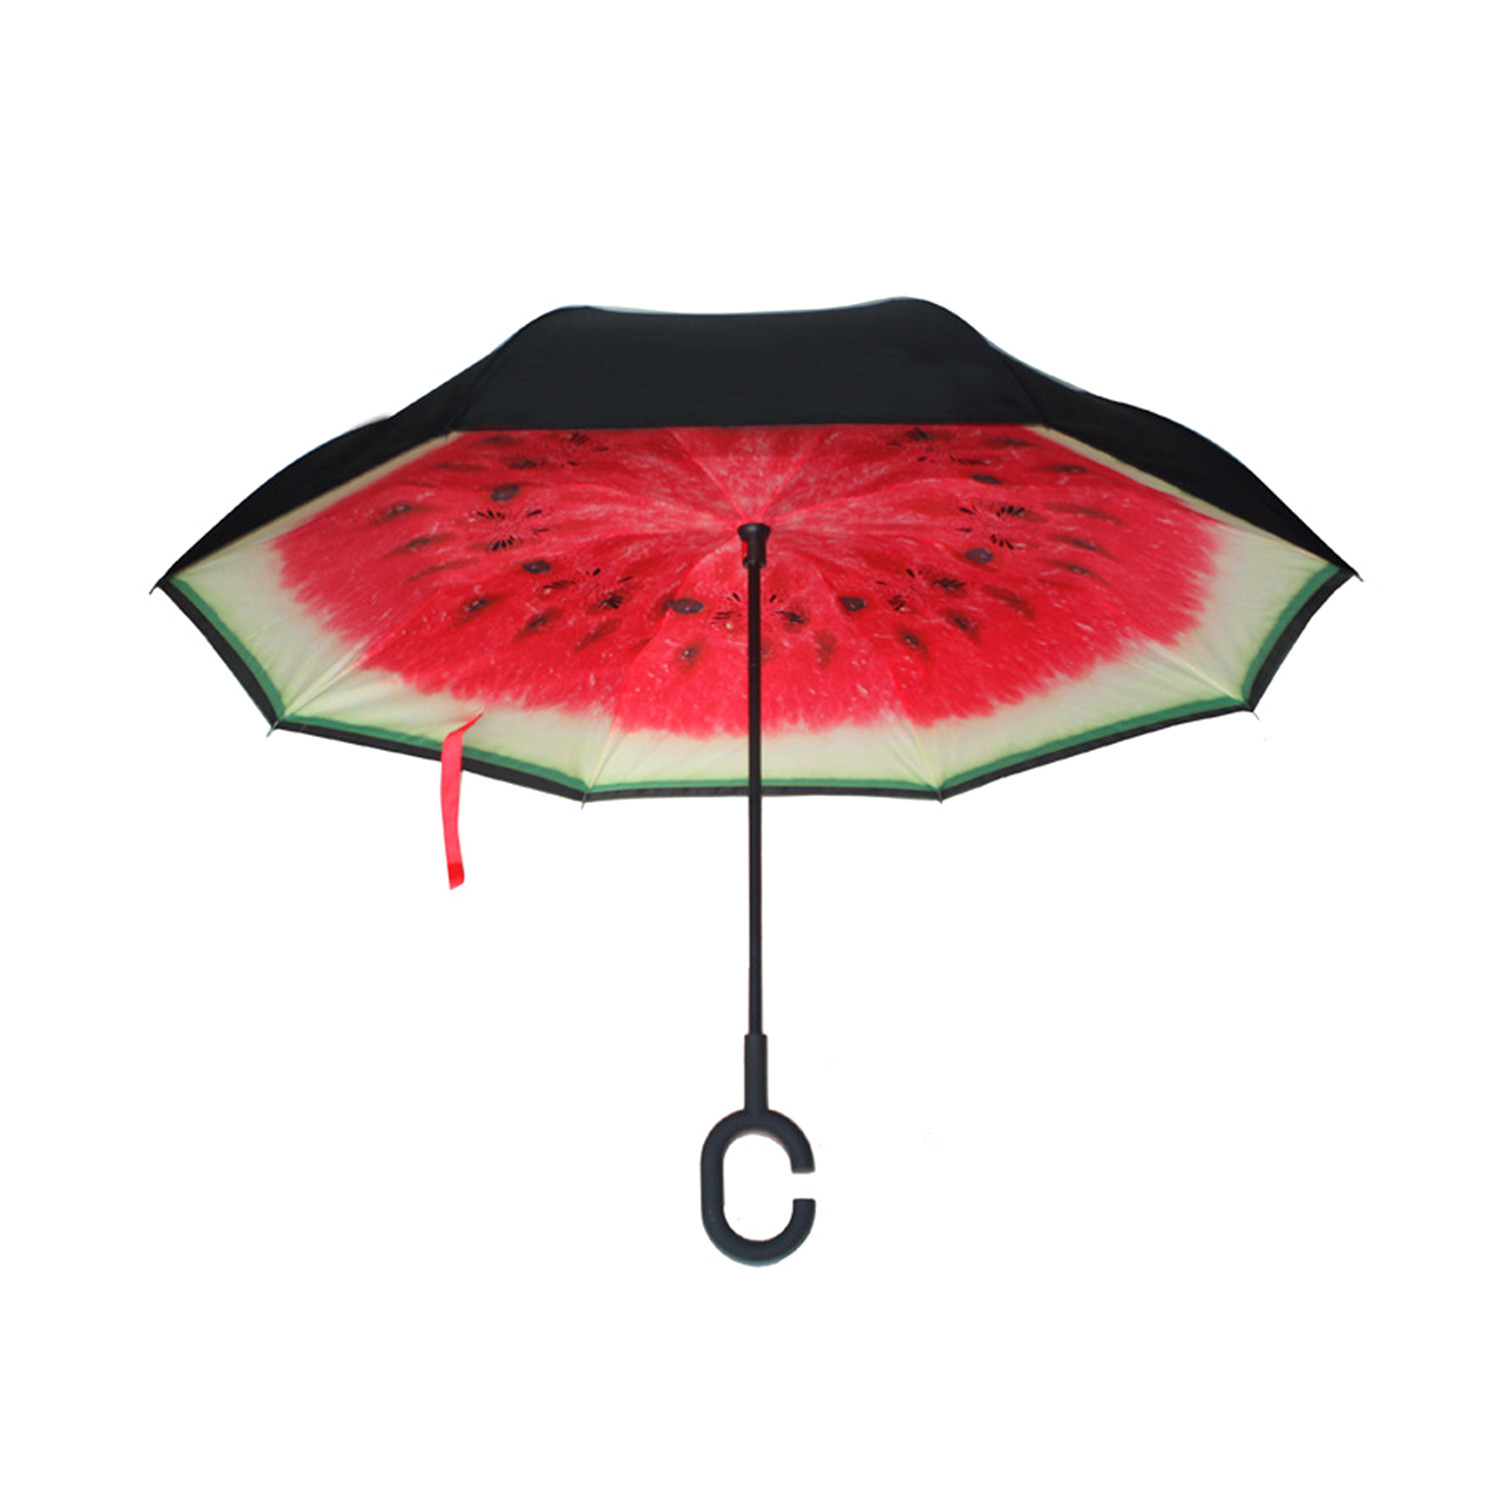 Upside Down Umbrellas // UU527 // Reversible